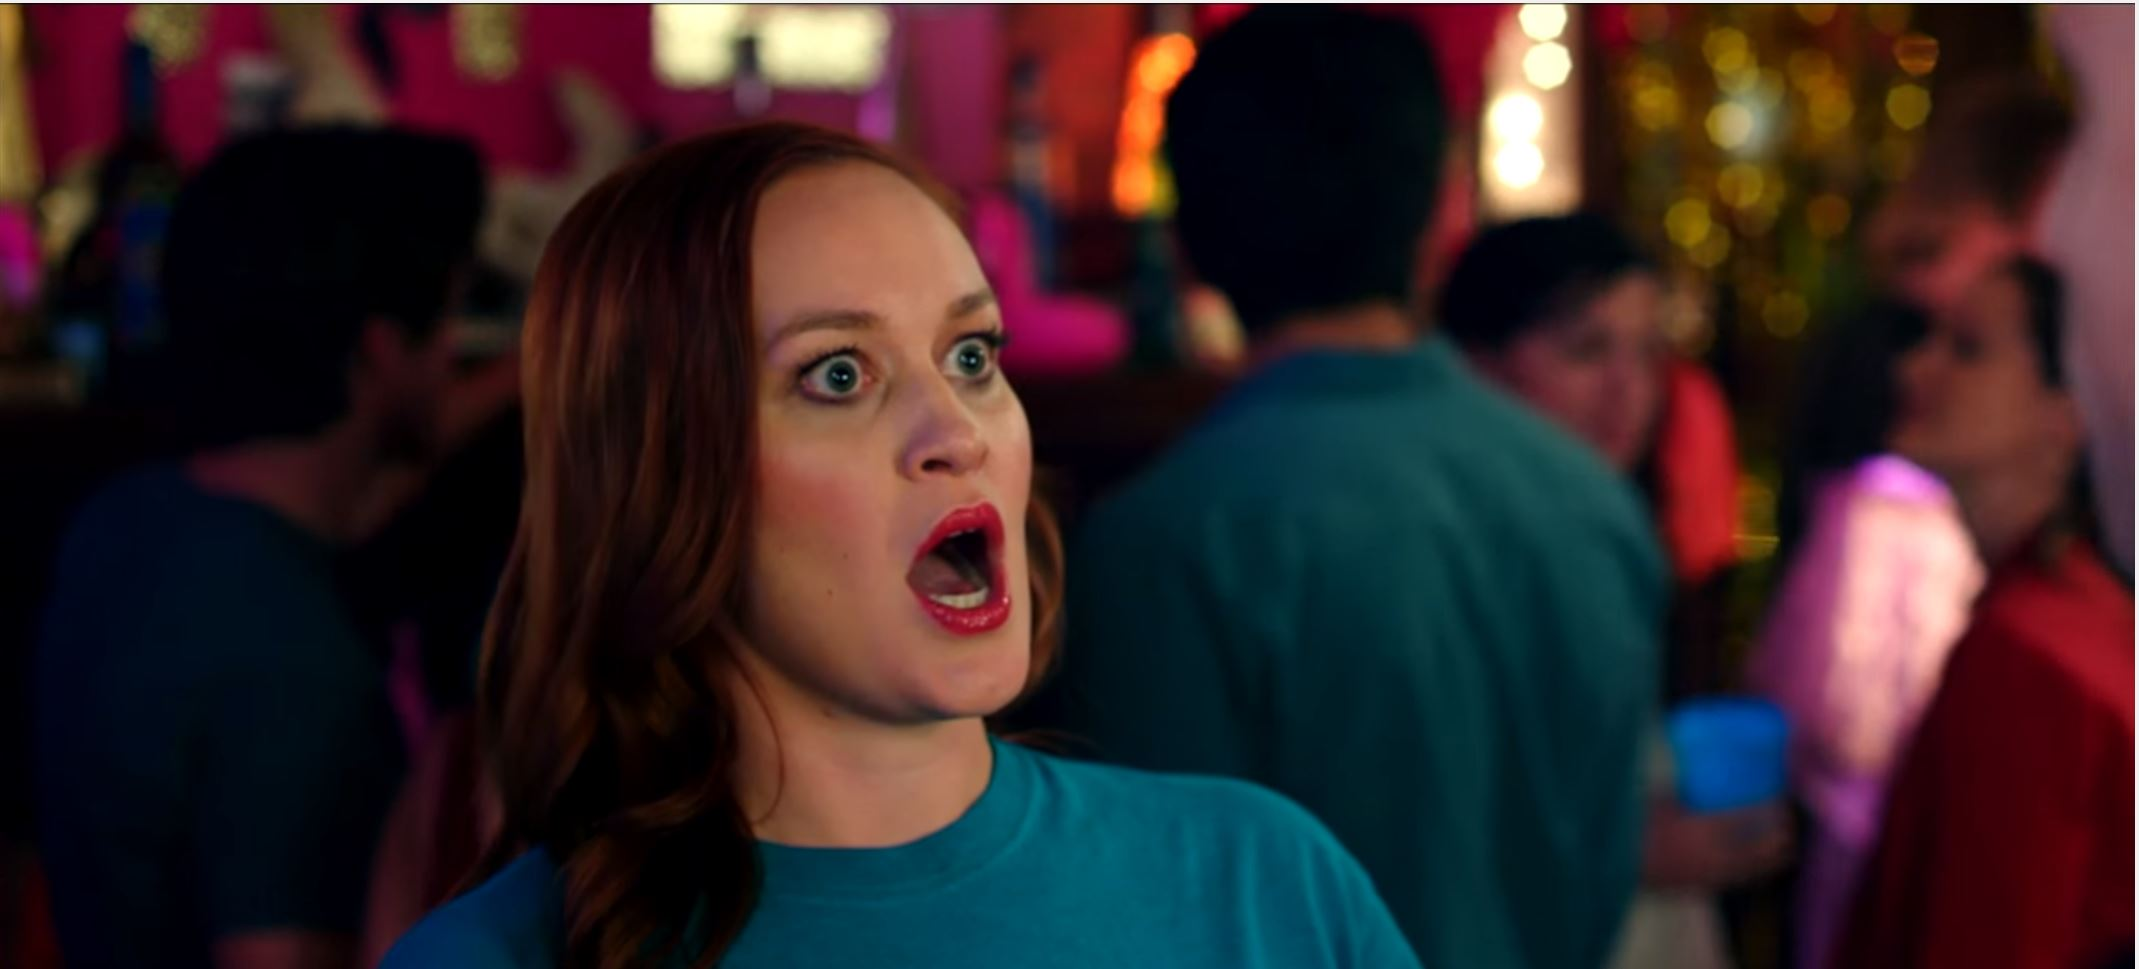 Check Out The Trailer For Dirty 30 With Mamrie Hart, Grace Helbig Movie & Their Guest spot at GMM!